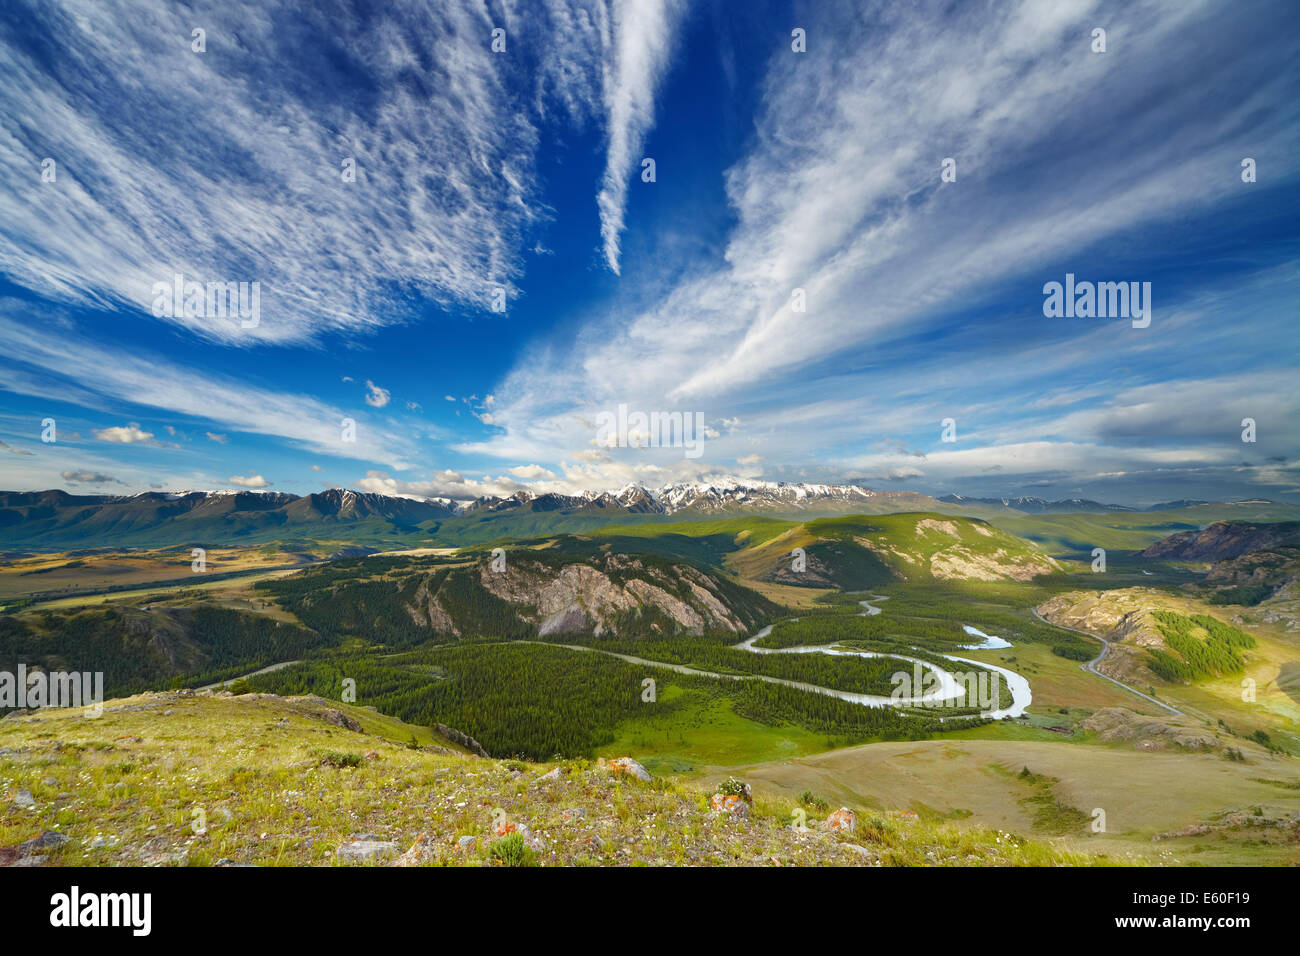 Mountain landscape with river and snowy peaks - Stock Image